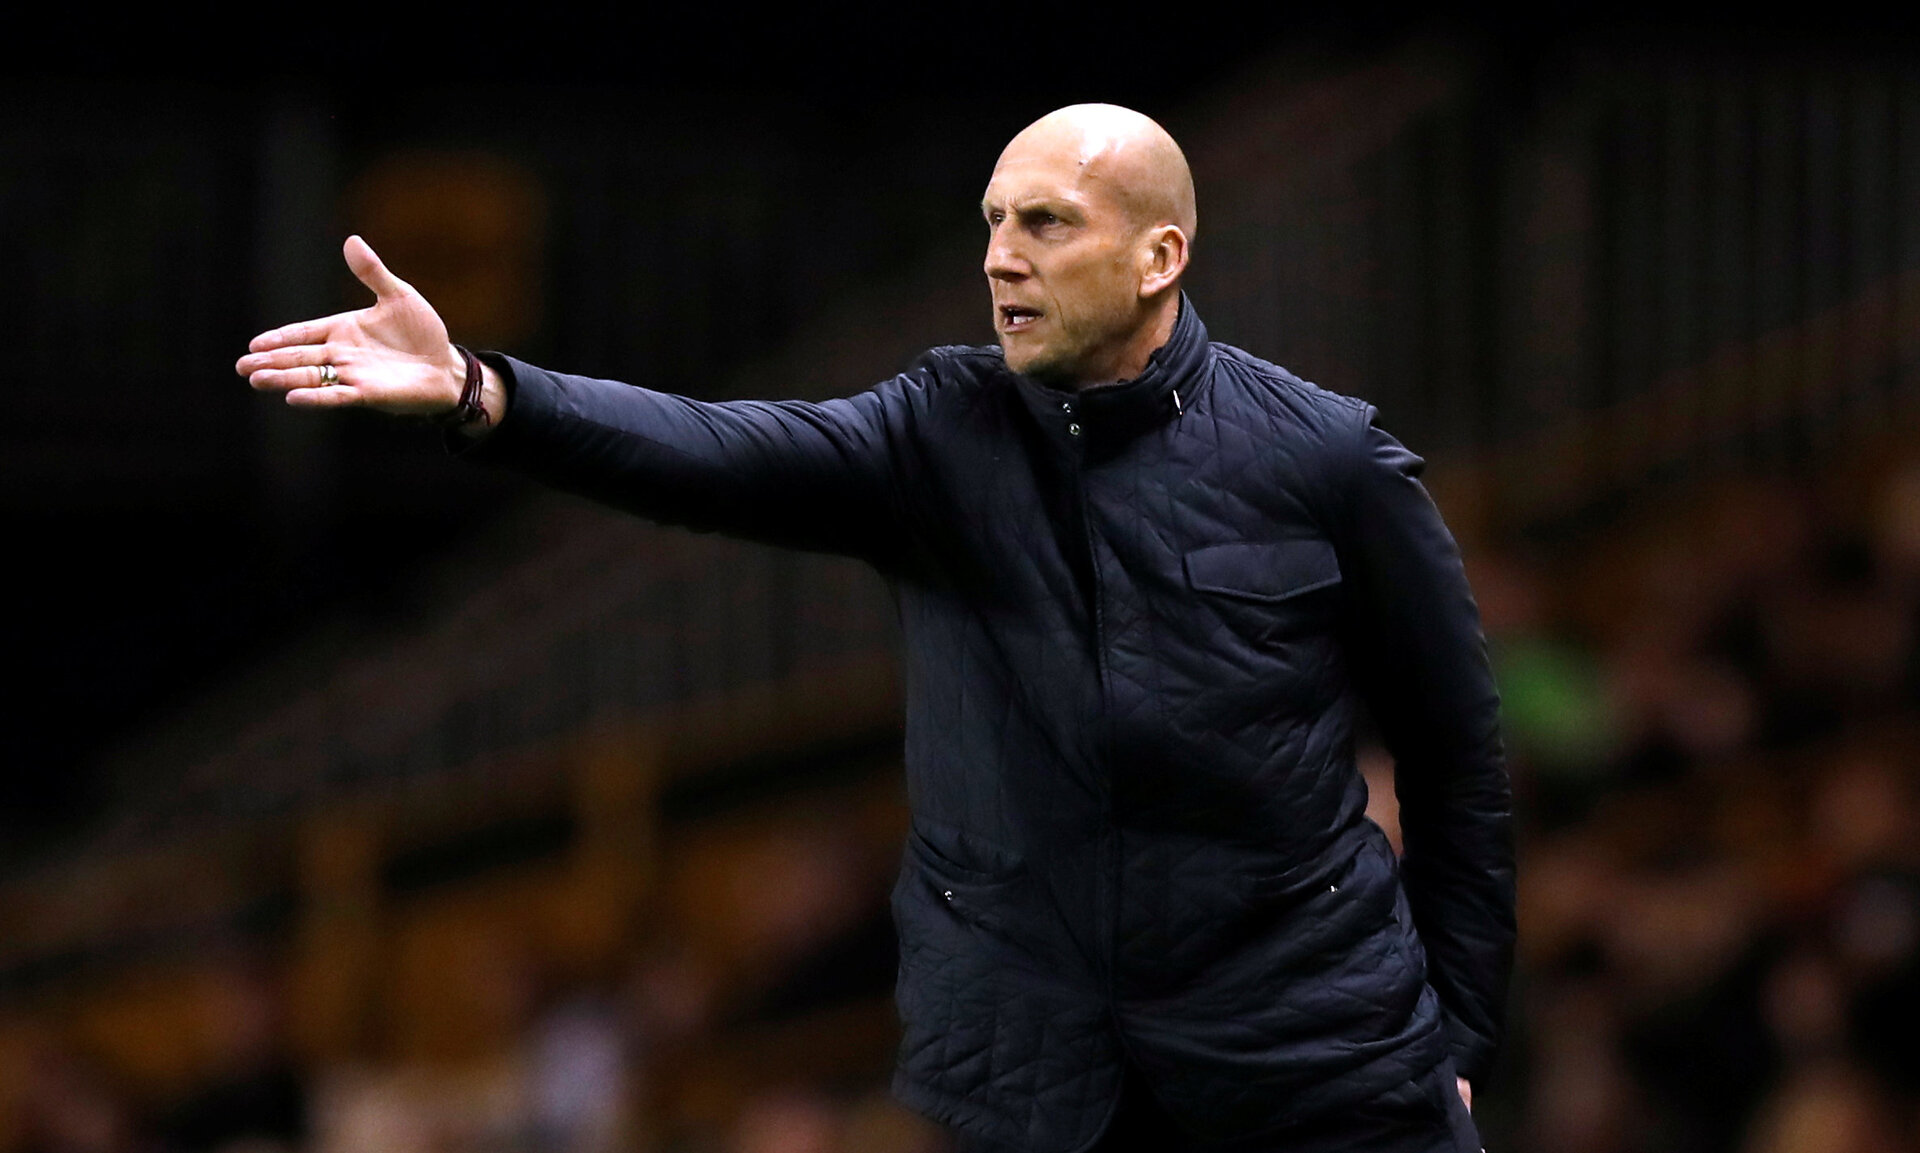 "Soccer Football - Championship - Wolverhampton Wanderers vs Reading - Molineux Stadium, Wolverhampton, Britain - March 13, 2018   Reading manager Jaap Stam gestures   Action Images/Peter Cziborra    EDITORIAL USE ONLY. No use with unauthorized audio, video, data, fixture lists, club/league logos or ""live"" services. Online in-match use limited to 75 images, no video emulation. No use in betting, games or single club/league/player publications. Please contact your account representative for further details."